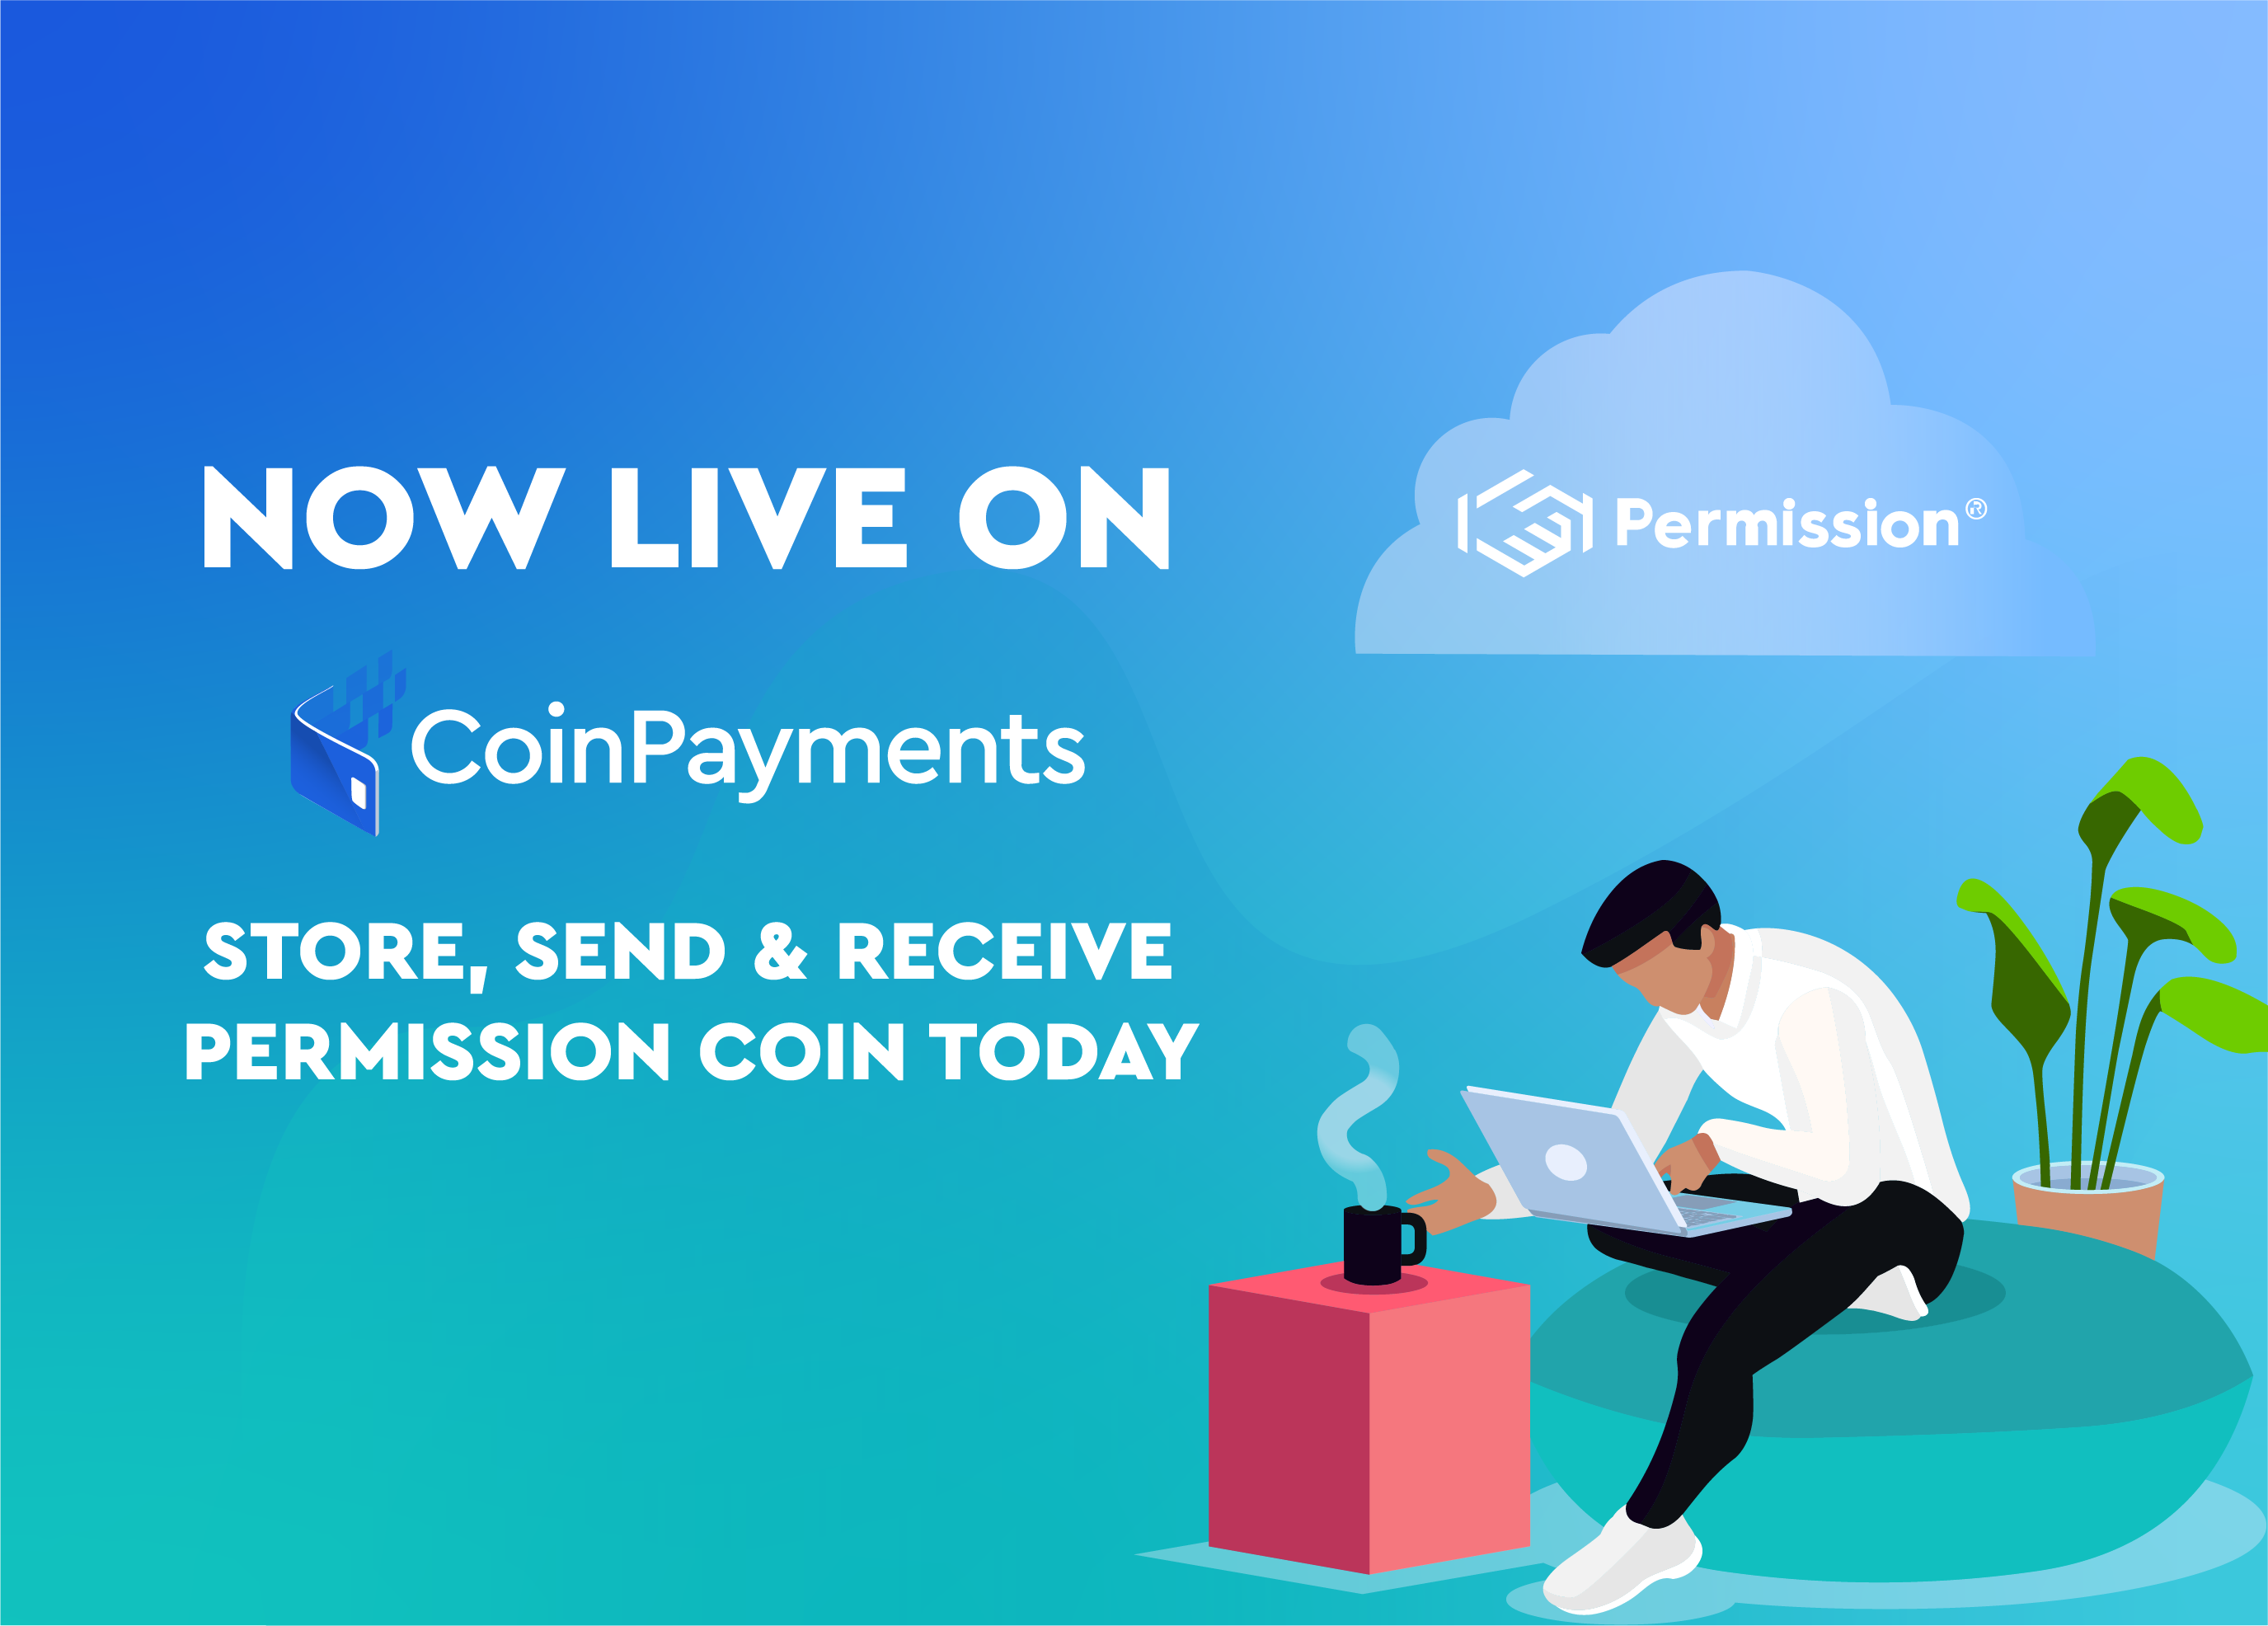 Permission Coin (ASK)